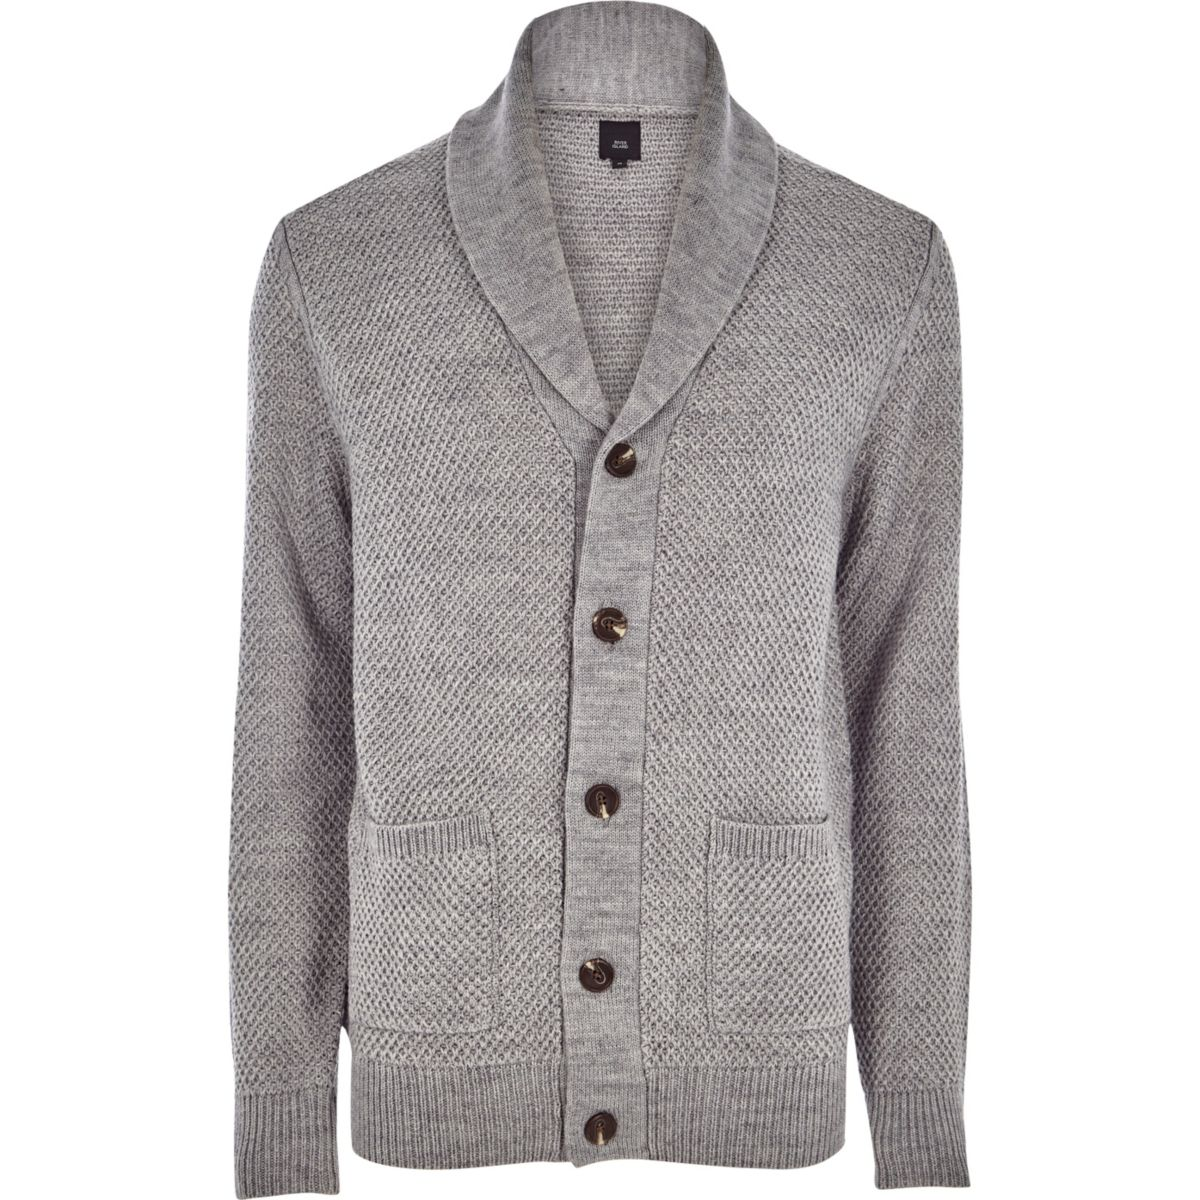 Grey shawl neck button-up knit cardigan - Jumpers & Cardigans ...